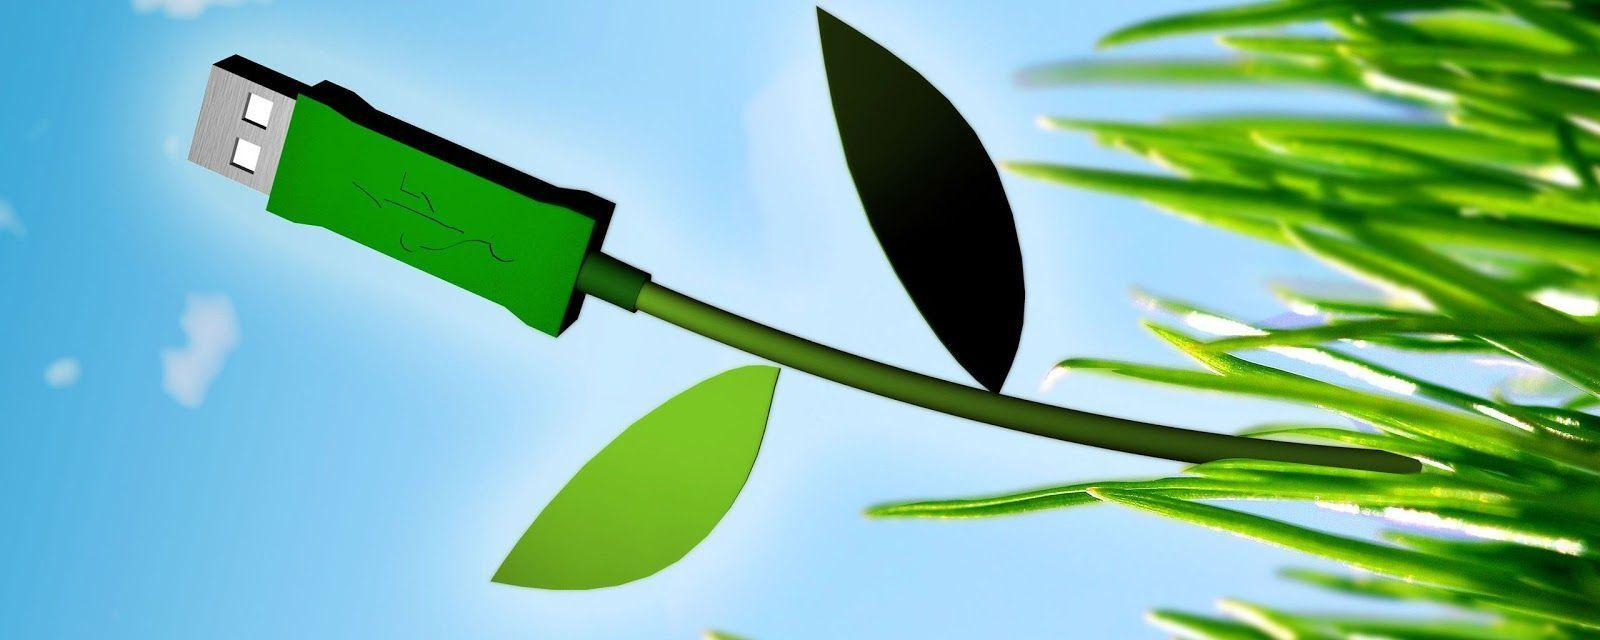 Wallpapers For > Green Technology Wallpaper